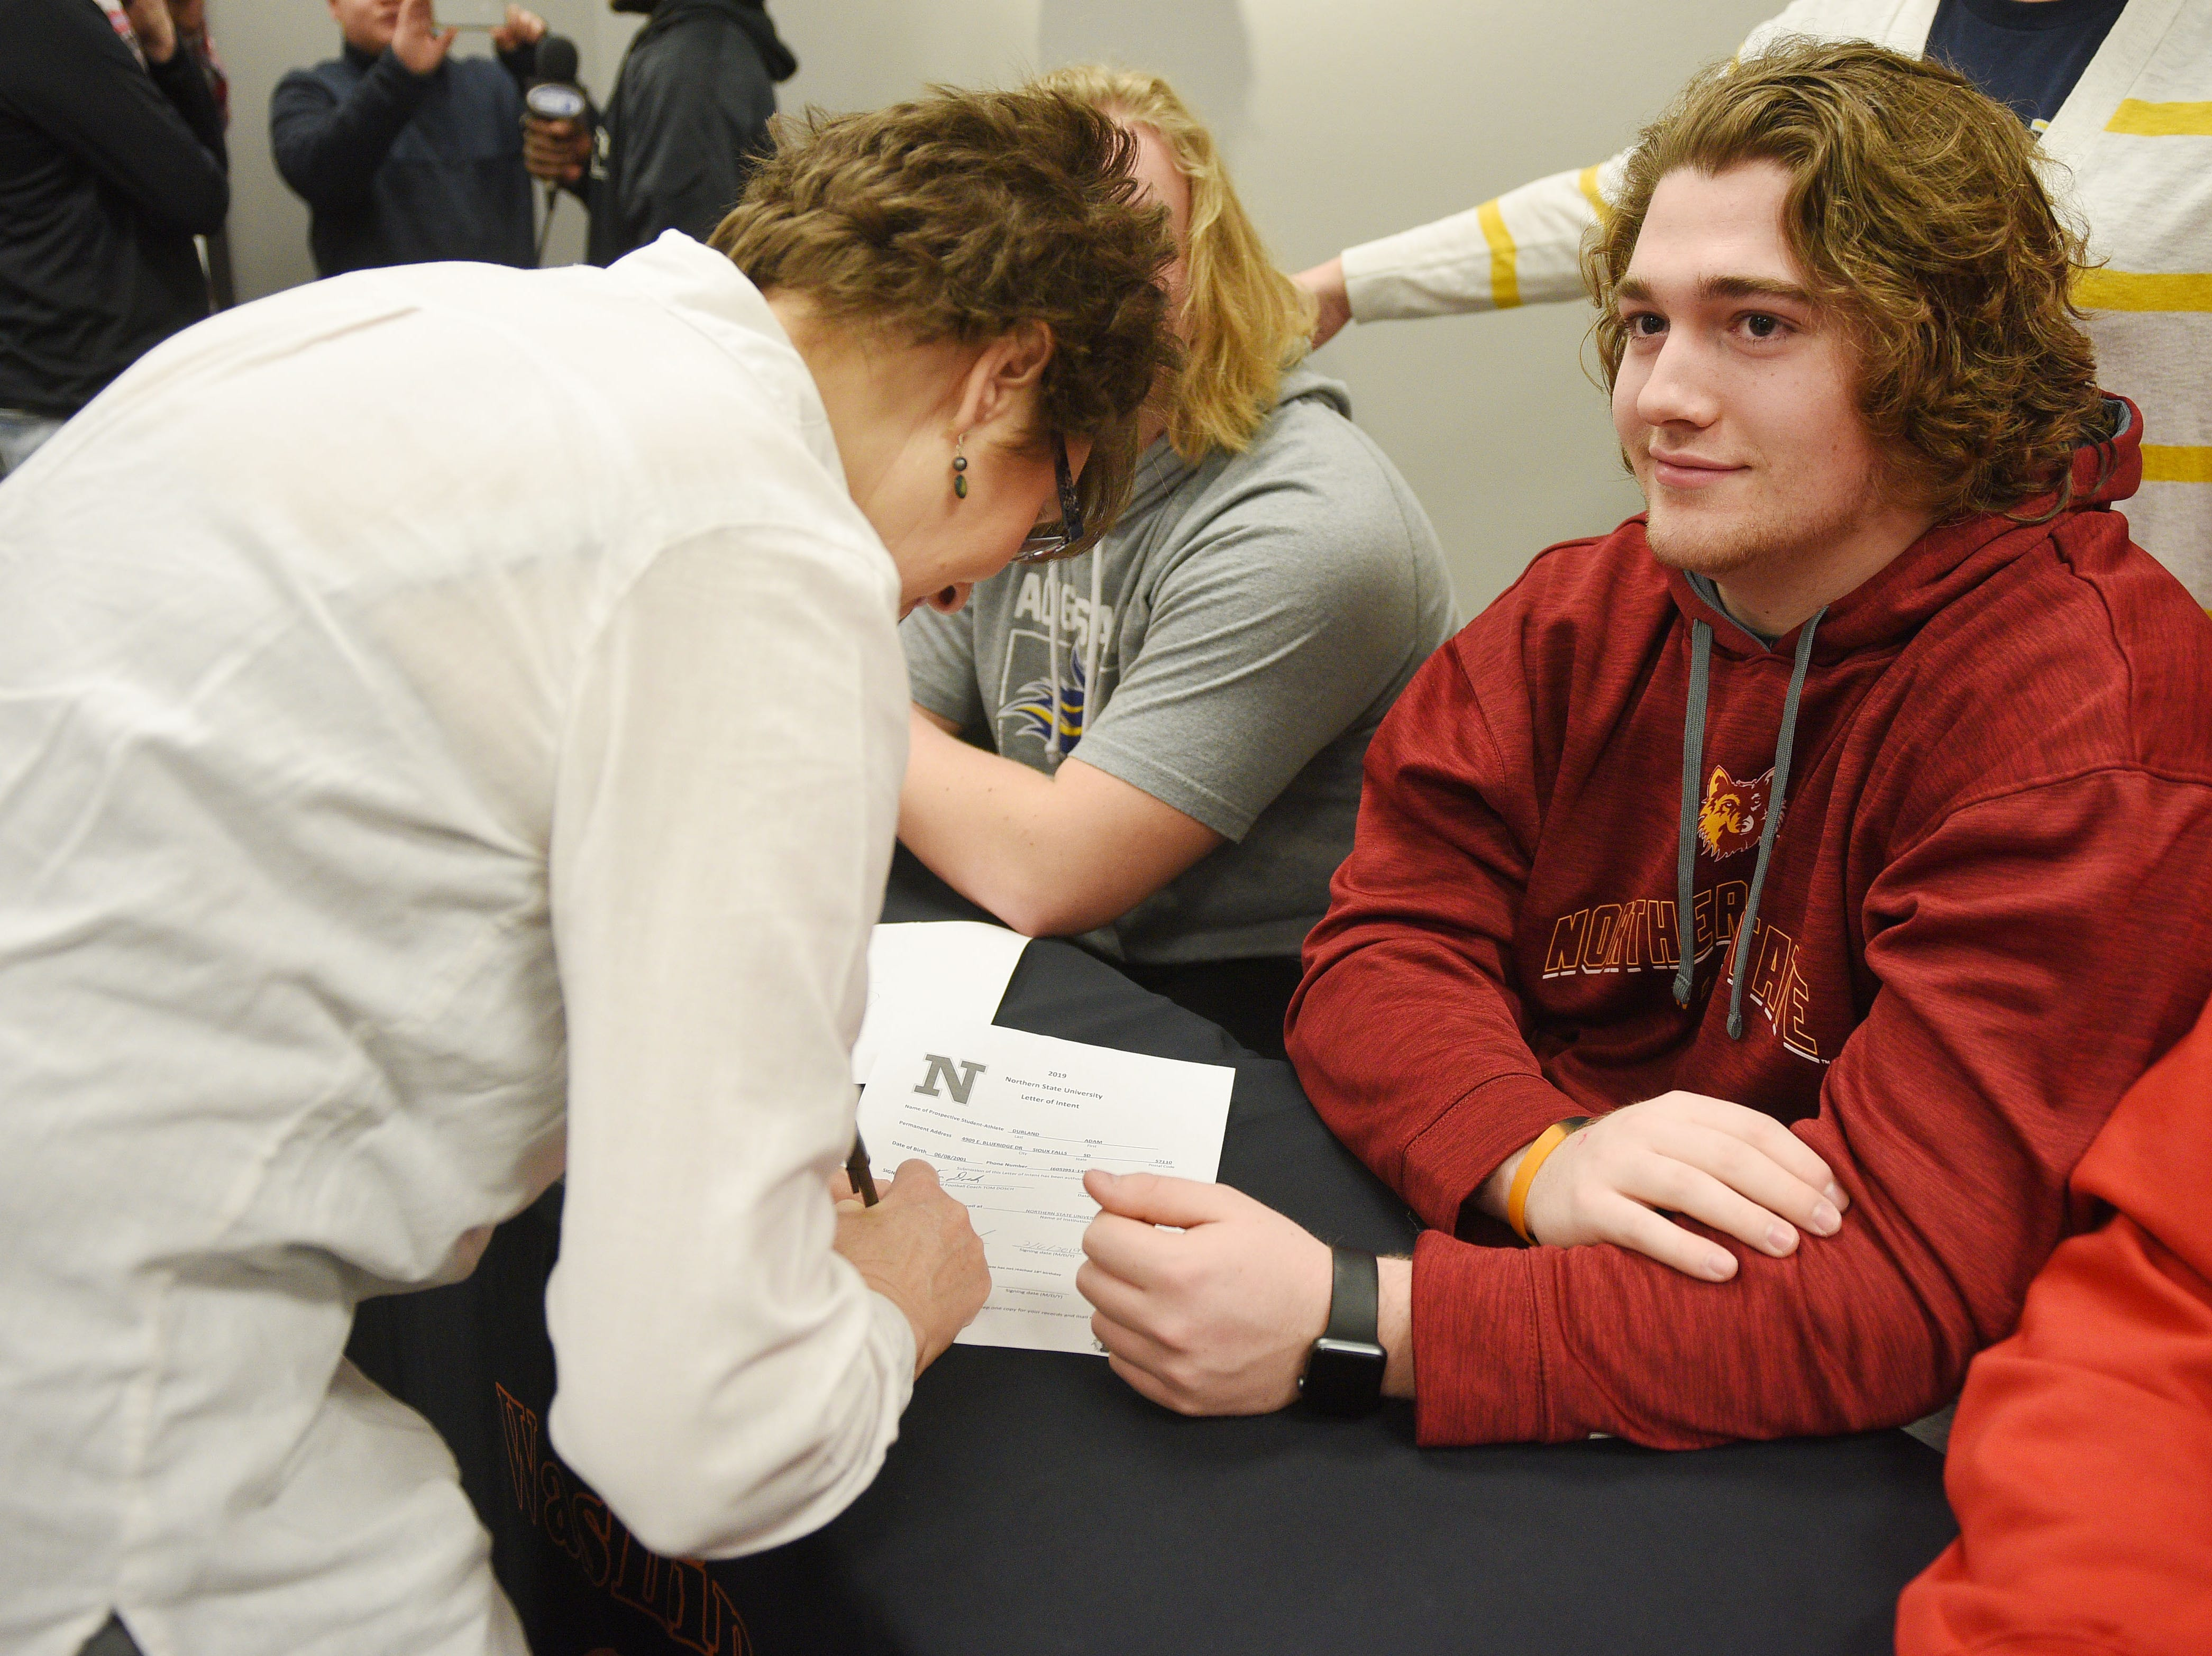 Deb Durland, left, signs her son Adam Durland's National Letter of Intent to play football at Northern State University during signing day for Washington High School Wednesday, Feb. 6, at Avera Sports Institute in Sioux Falls.